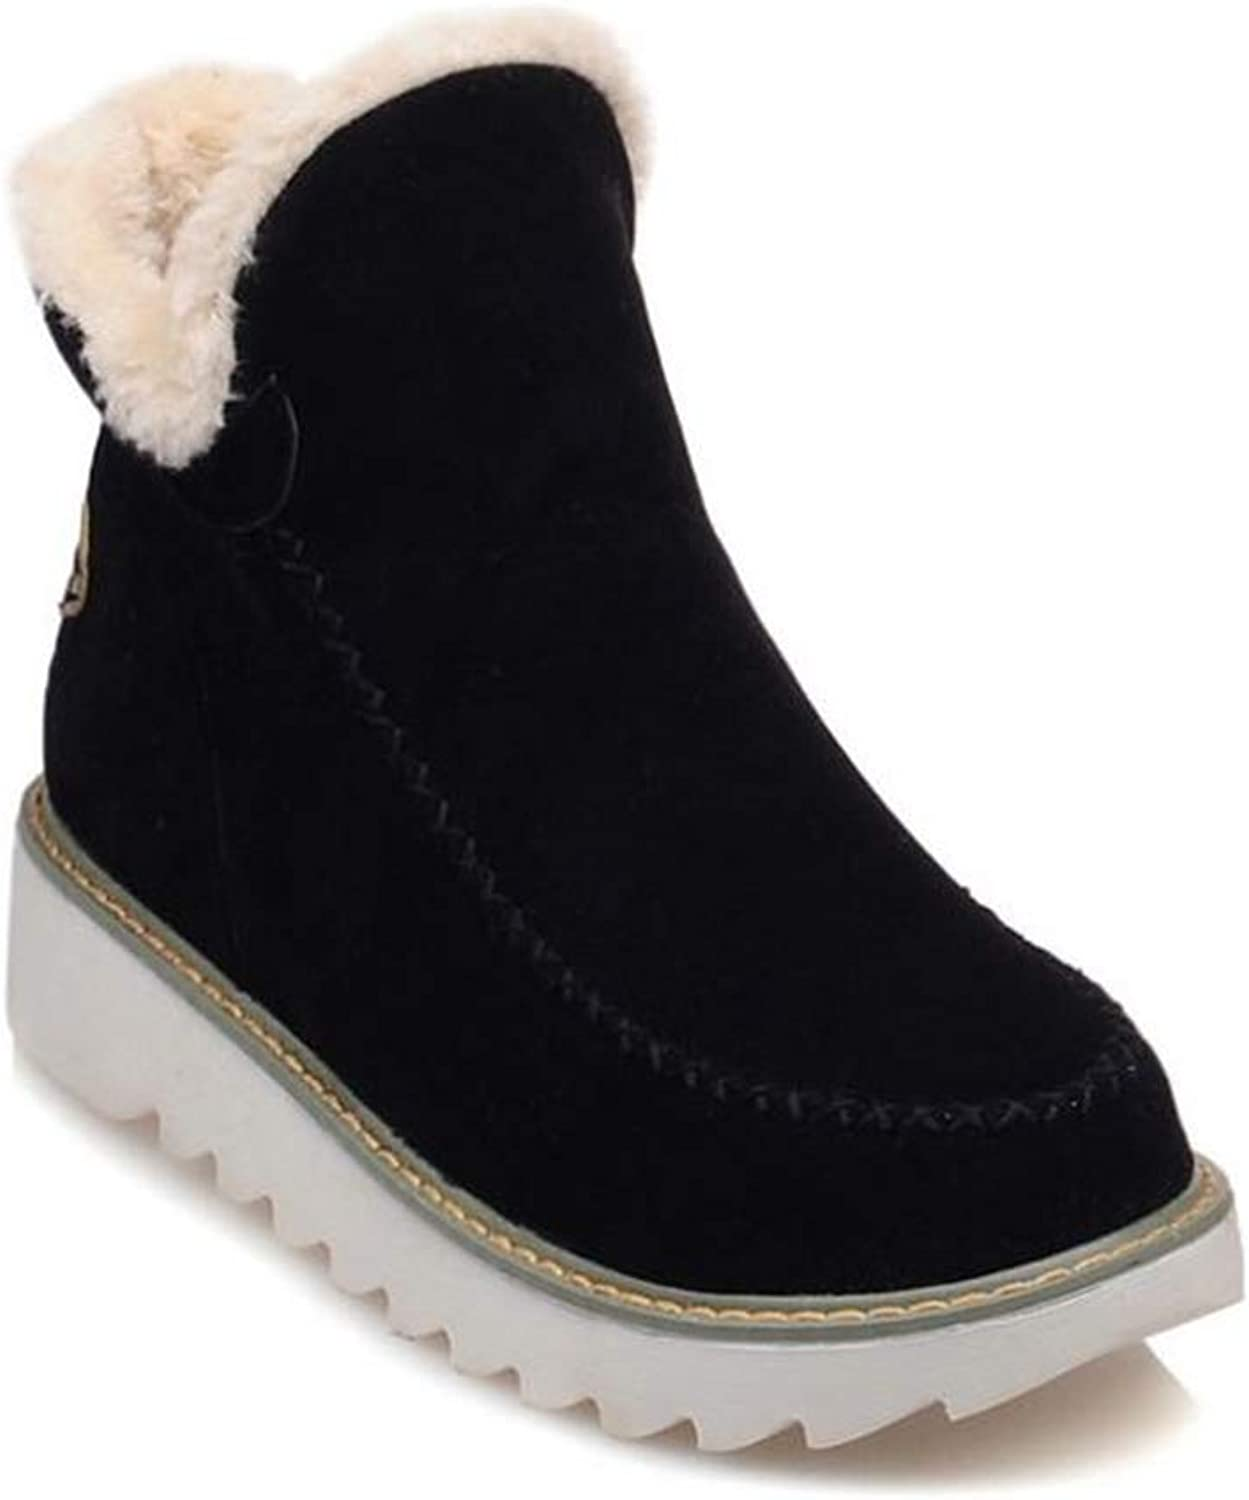 Super color Women's Snow Boots Platform Anti-Slip Soft Warm Fur Lined Winter Ankle Booties